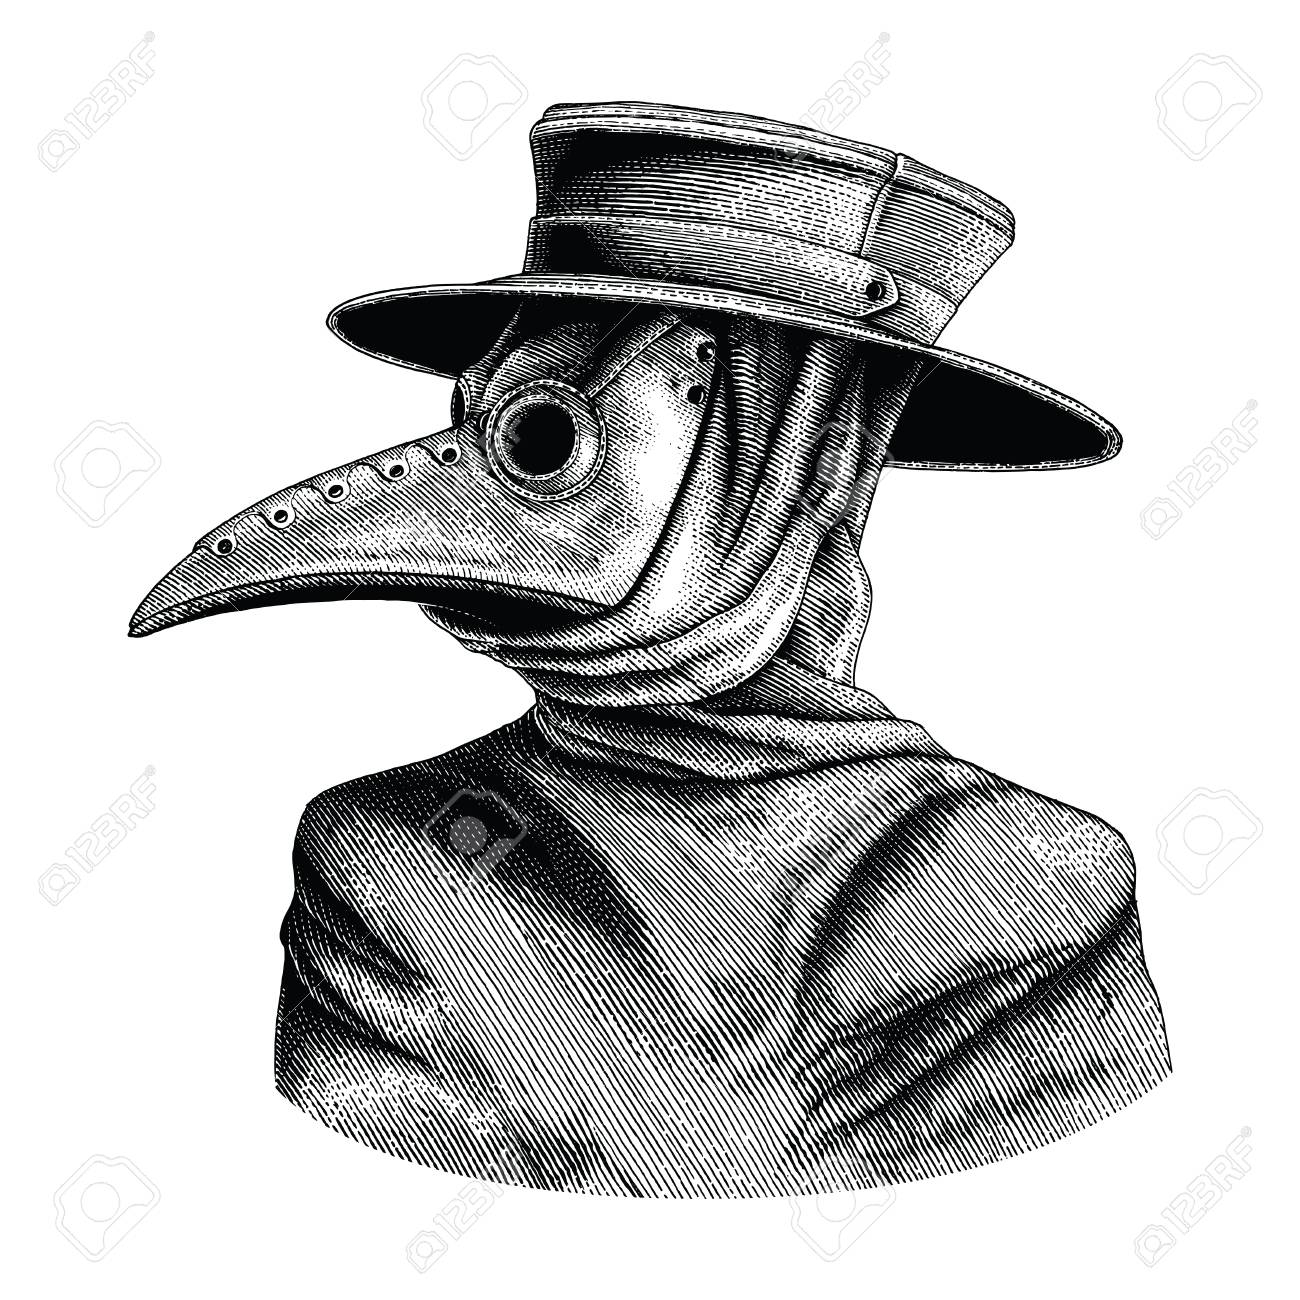 Plague doctor hand drawing vintage engraving isolate on white background - 102872840